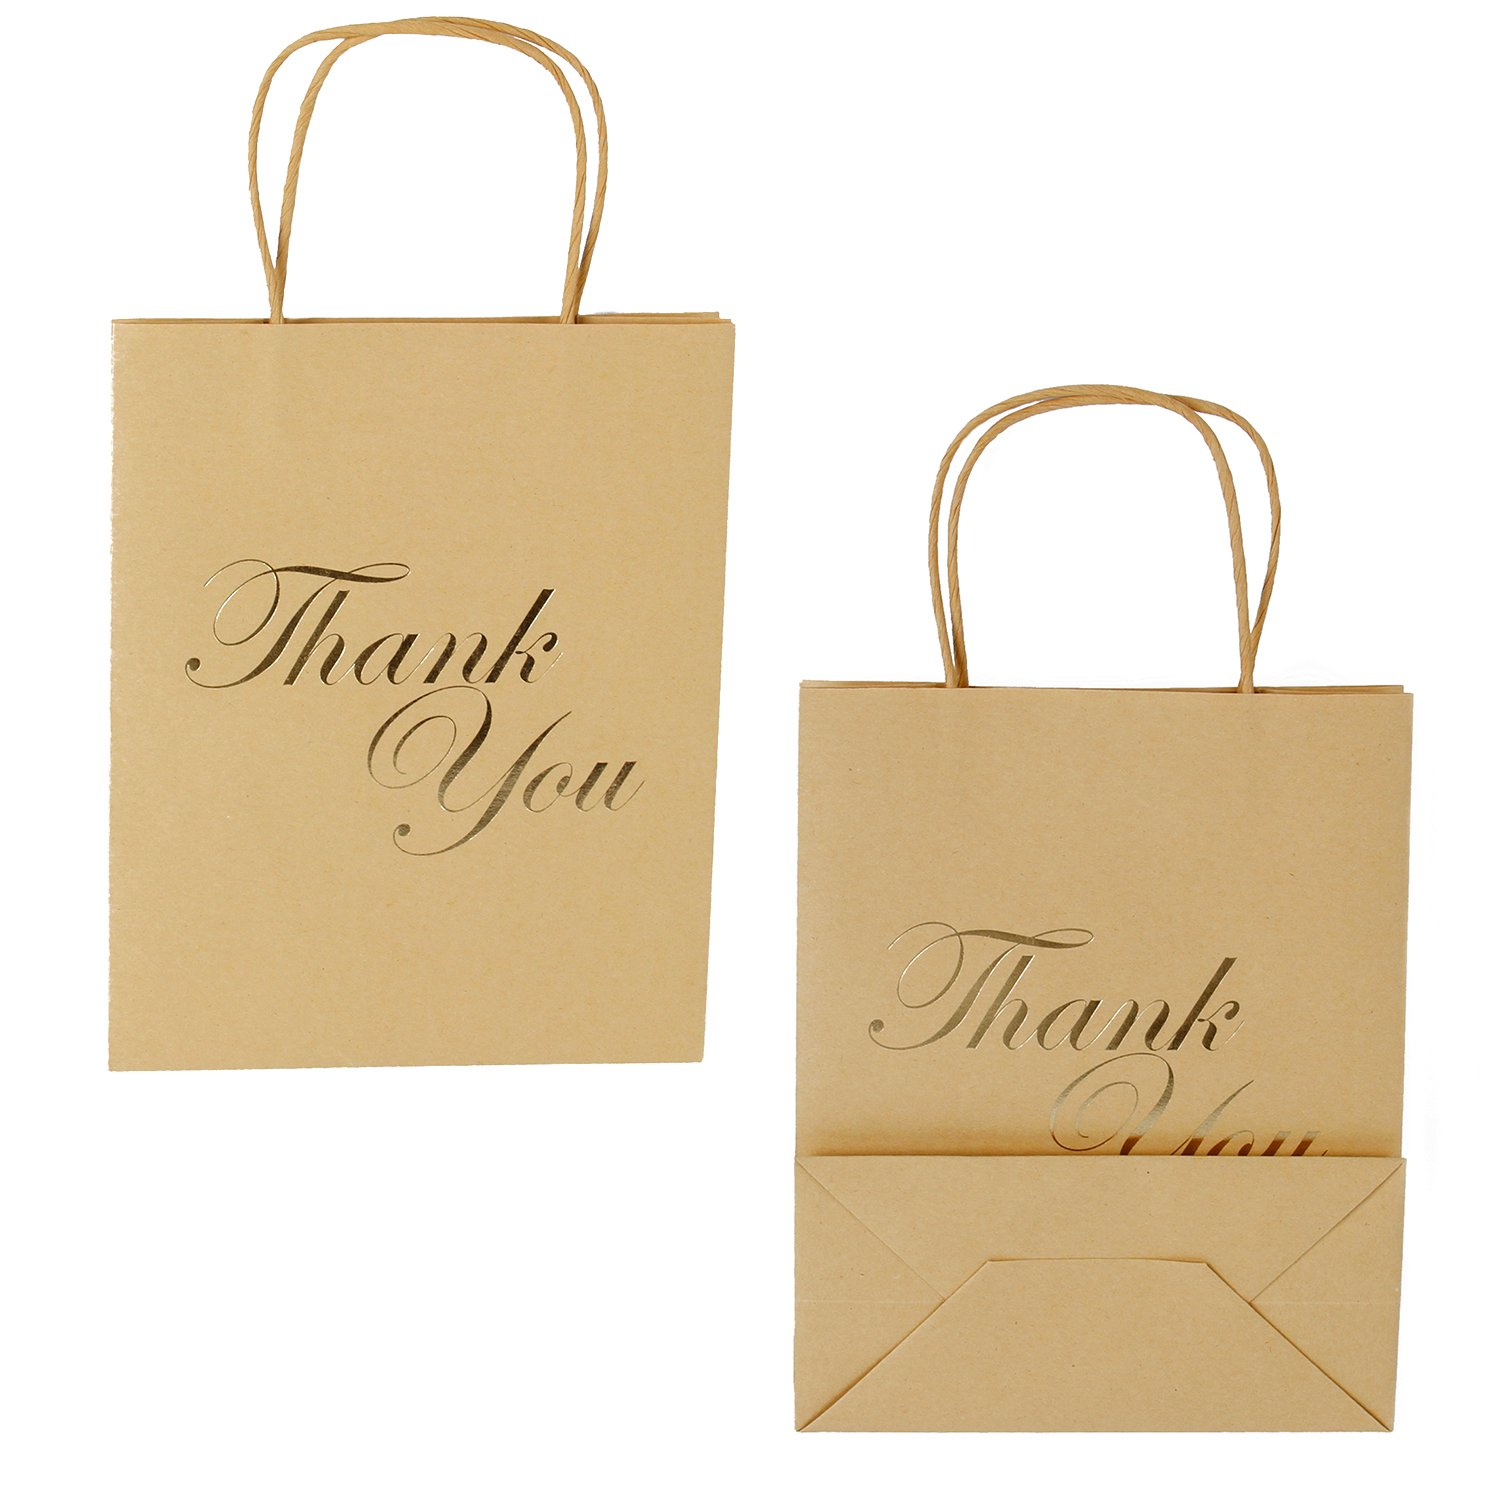 LaRibbon Medium Size Gift Bags - Gold Foil Thank You Brown Paper Bags with Handles for Wedding, Birthday, Baby Shower, Party Favors - 12 Pack - 8'' x 4'' x 10''